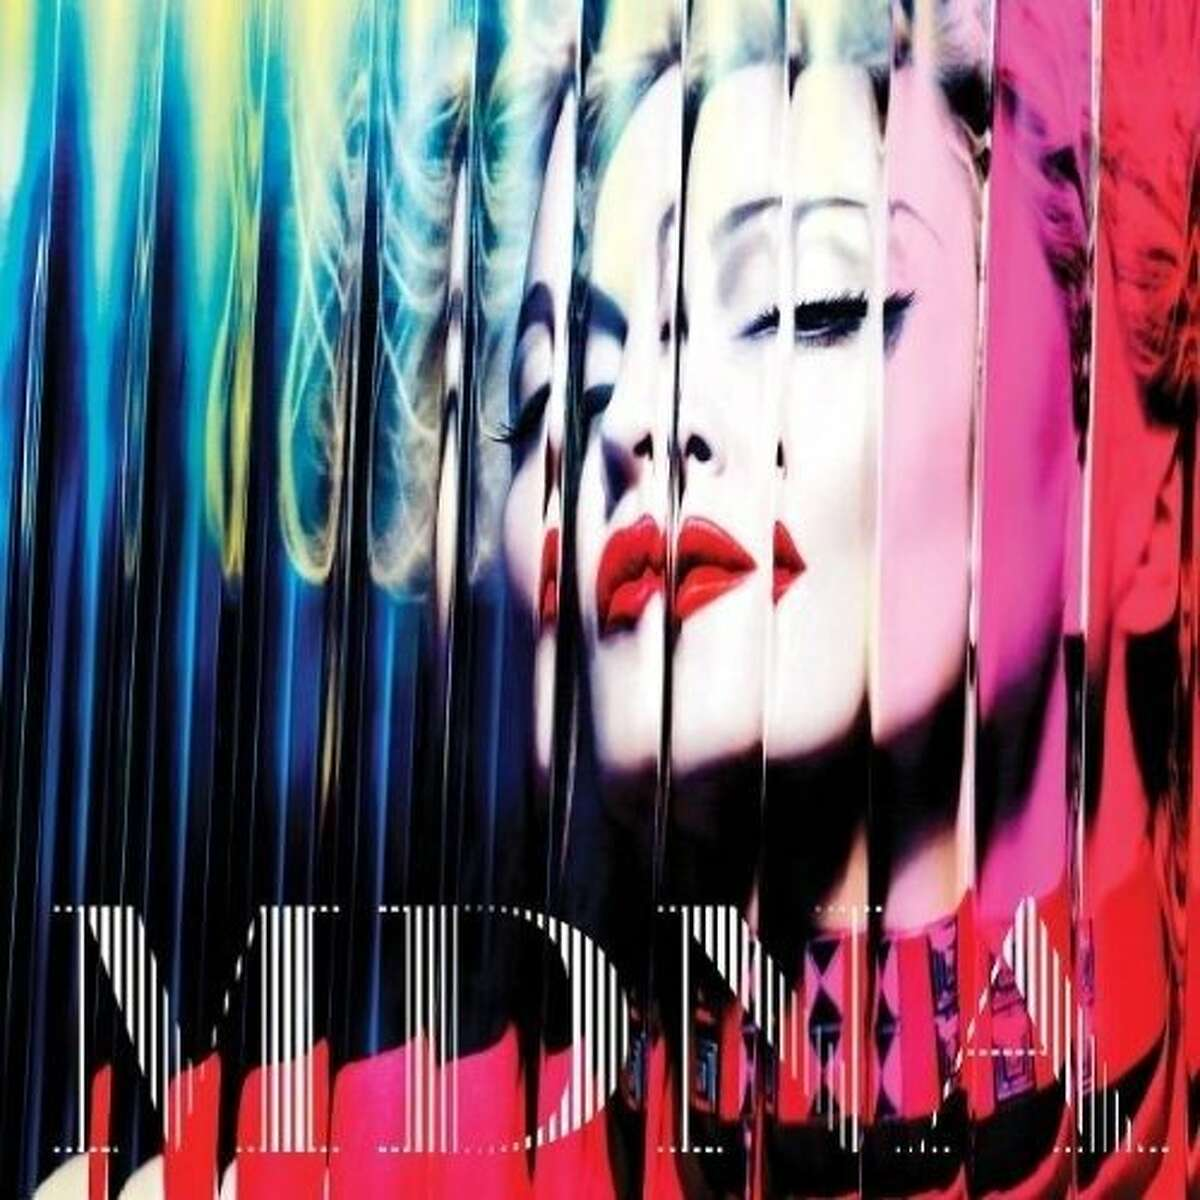 CD cover: Madonna's